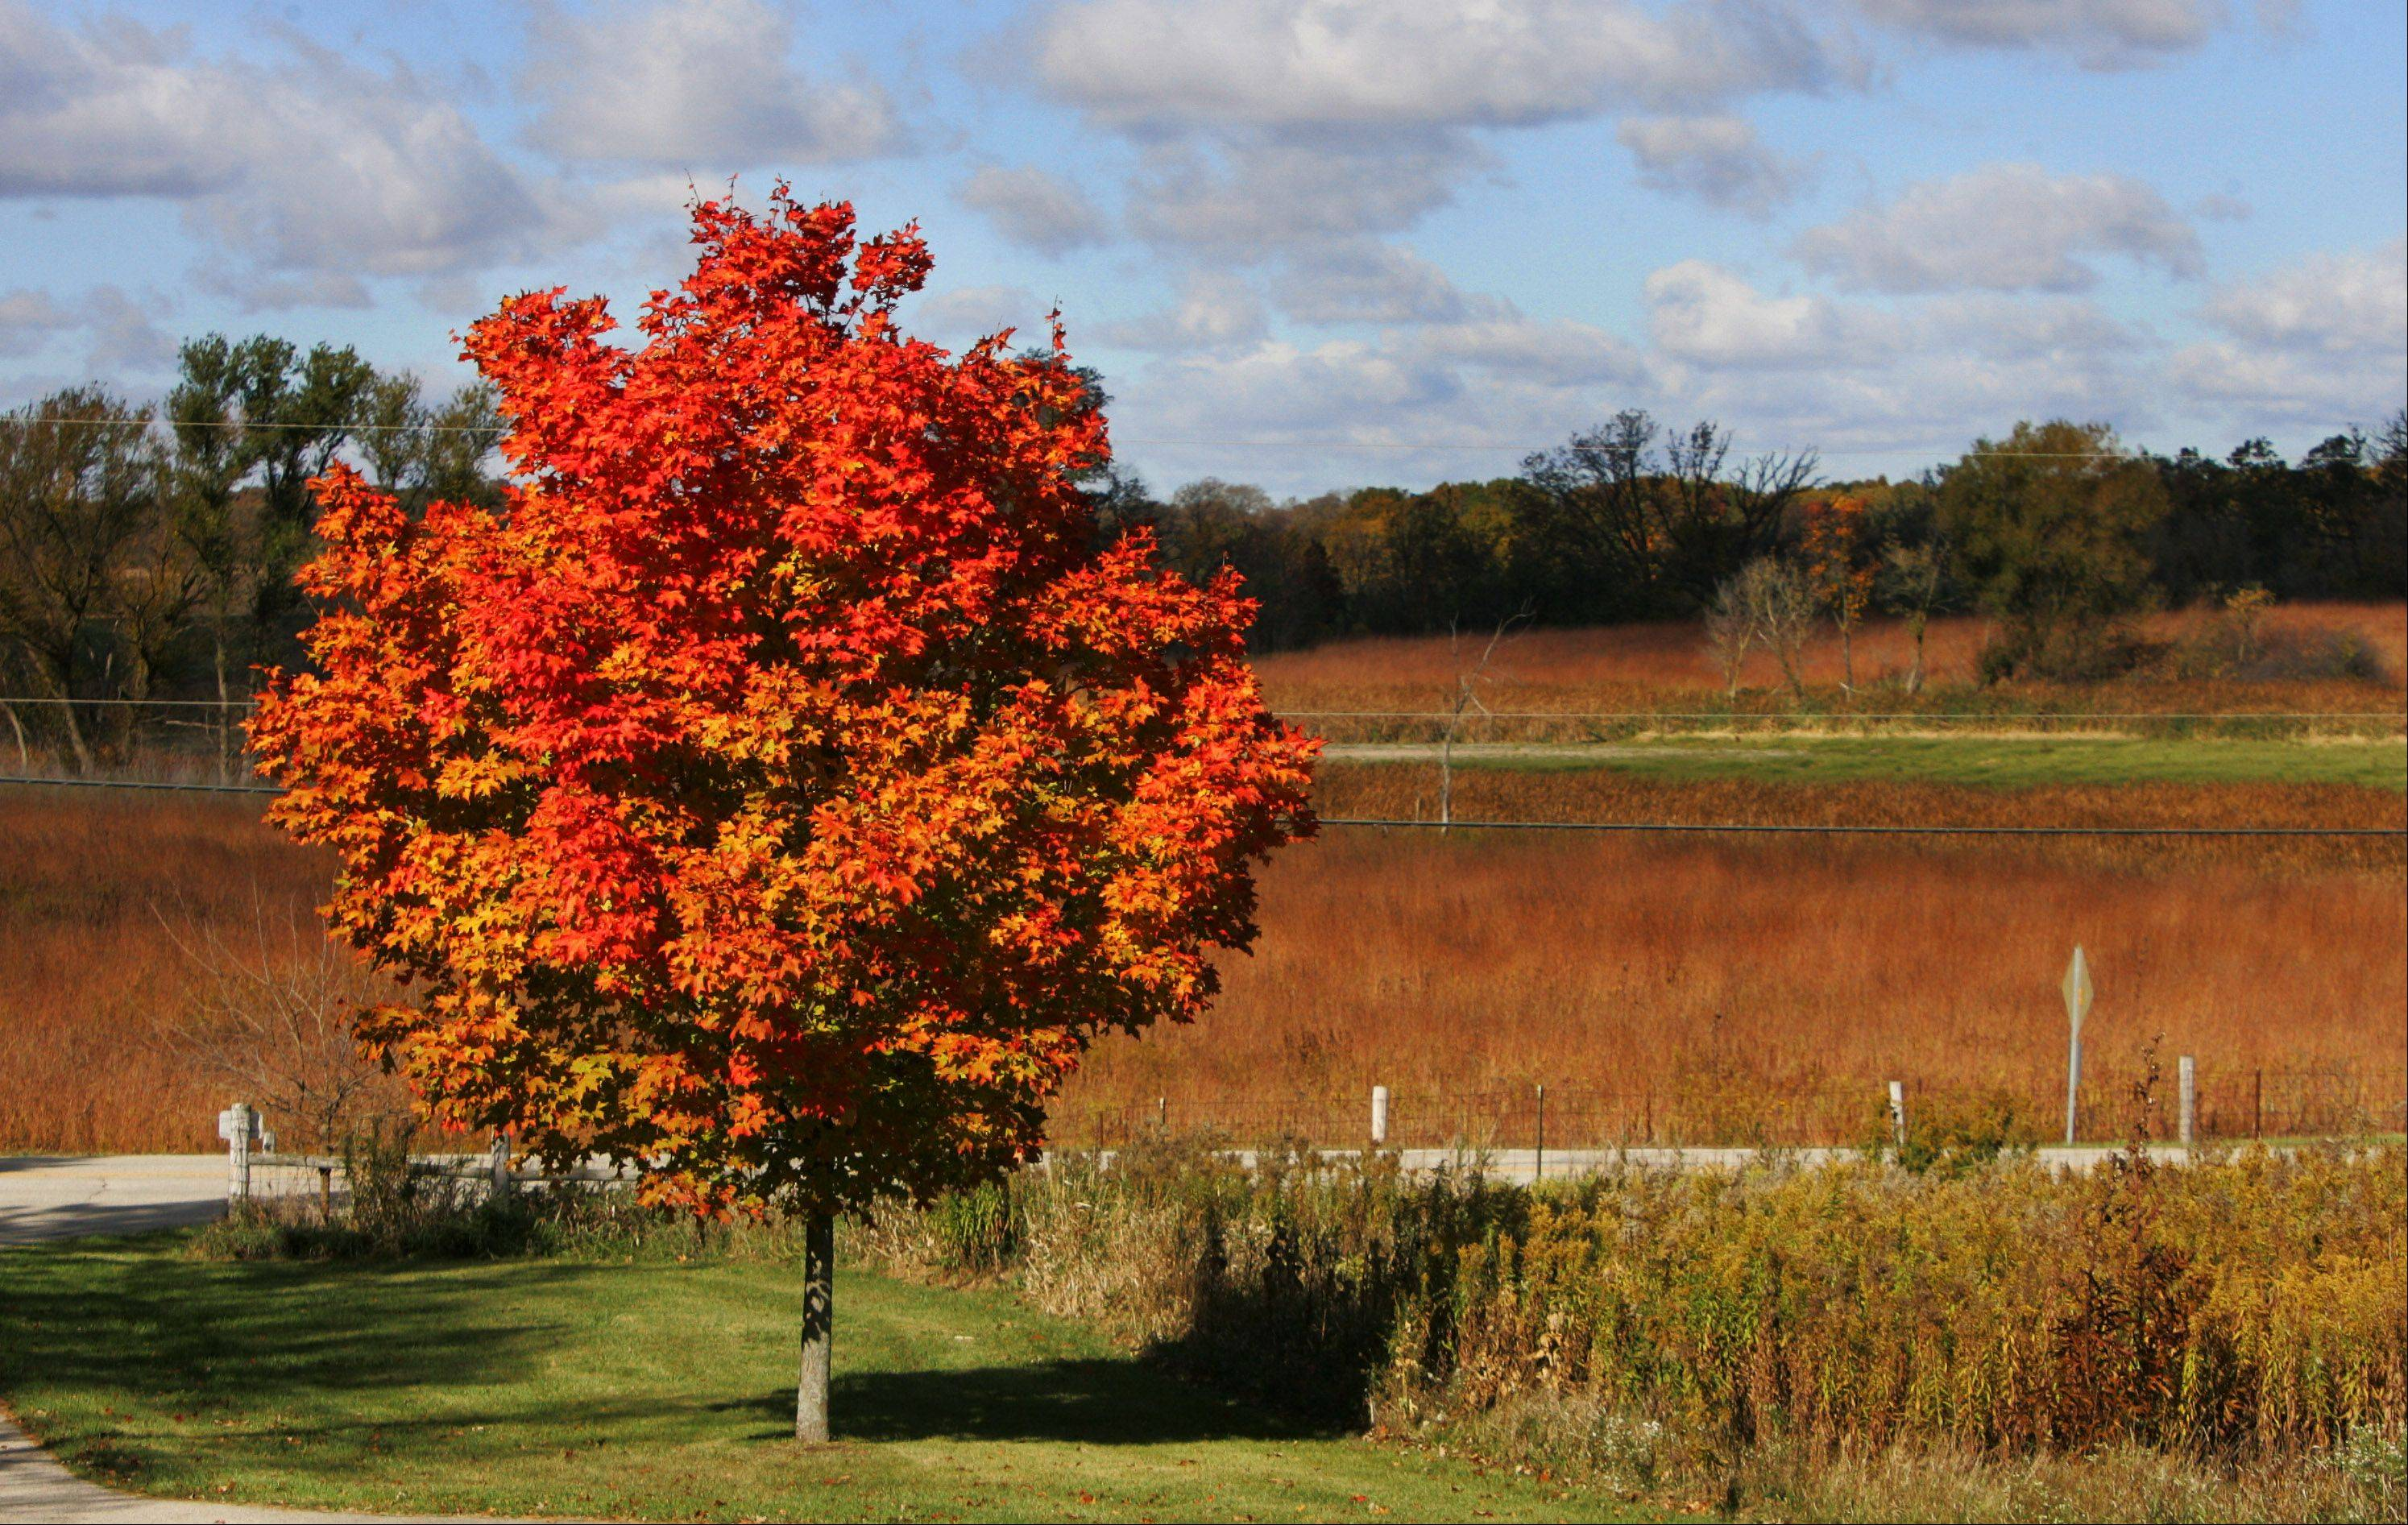 Trees and bushes are changing into their fall colors in Volo Bog State Natural Area.